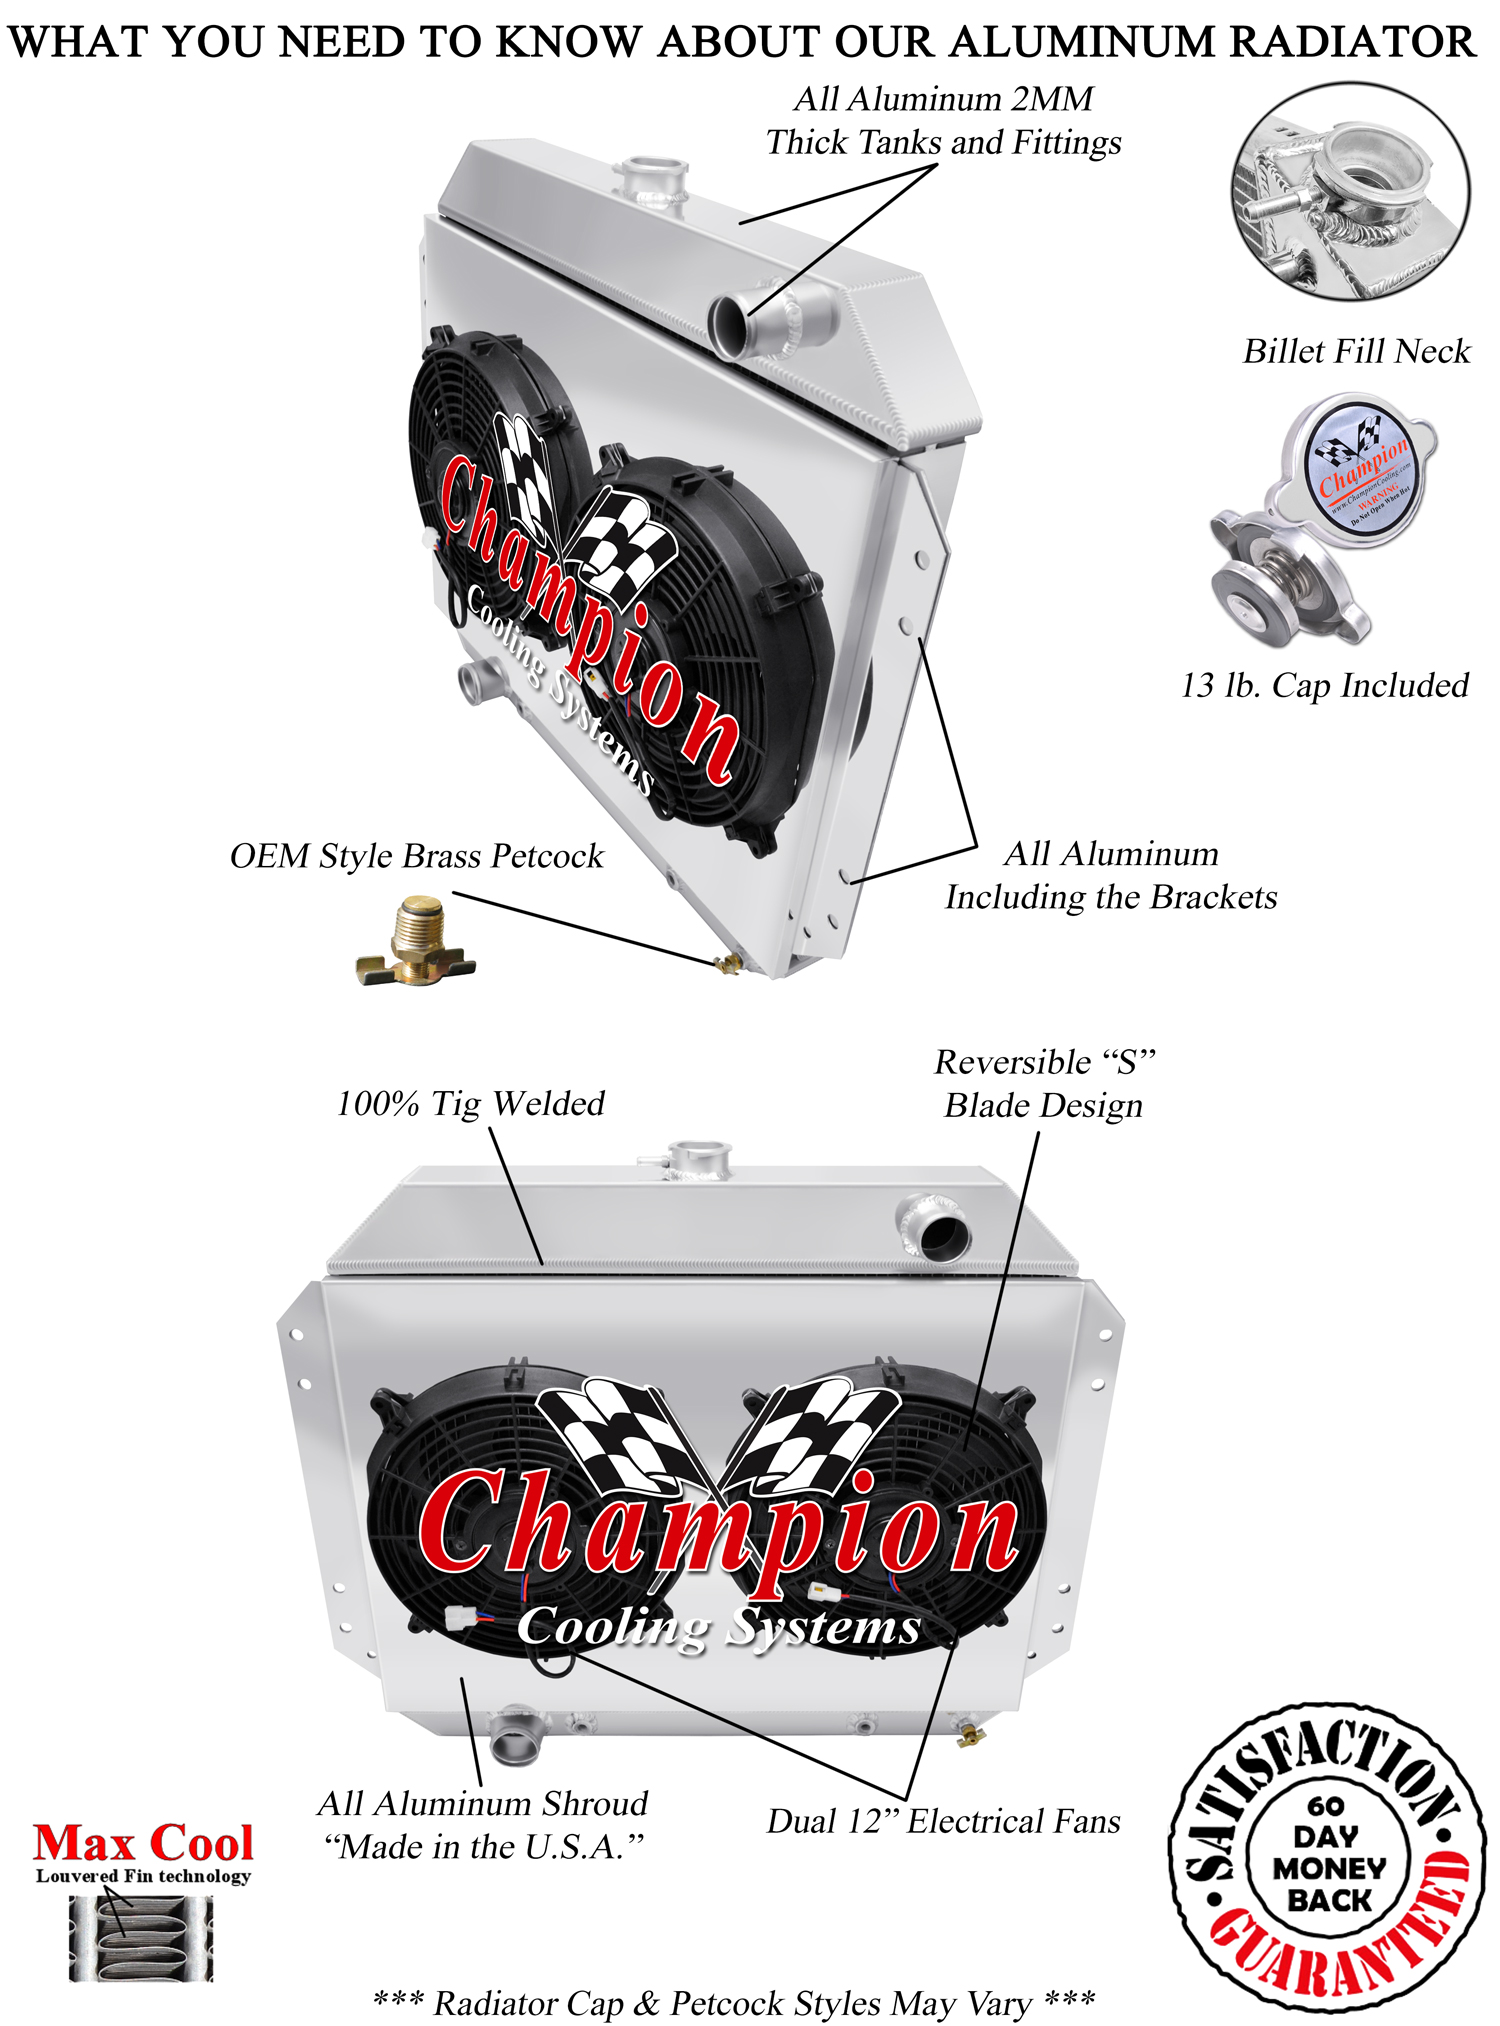 https://www.championcooling.com/photos/Photos%20White/With%20Fans/W-Shroud/444/444_2fs_d_w.jpg